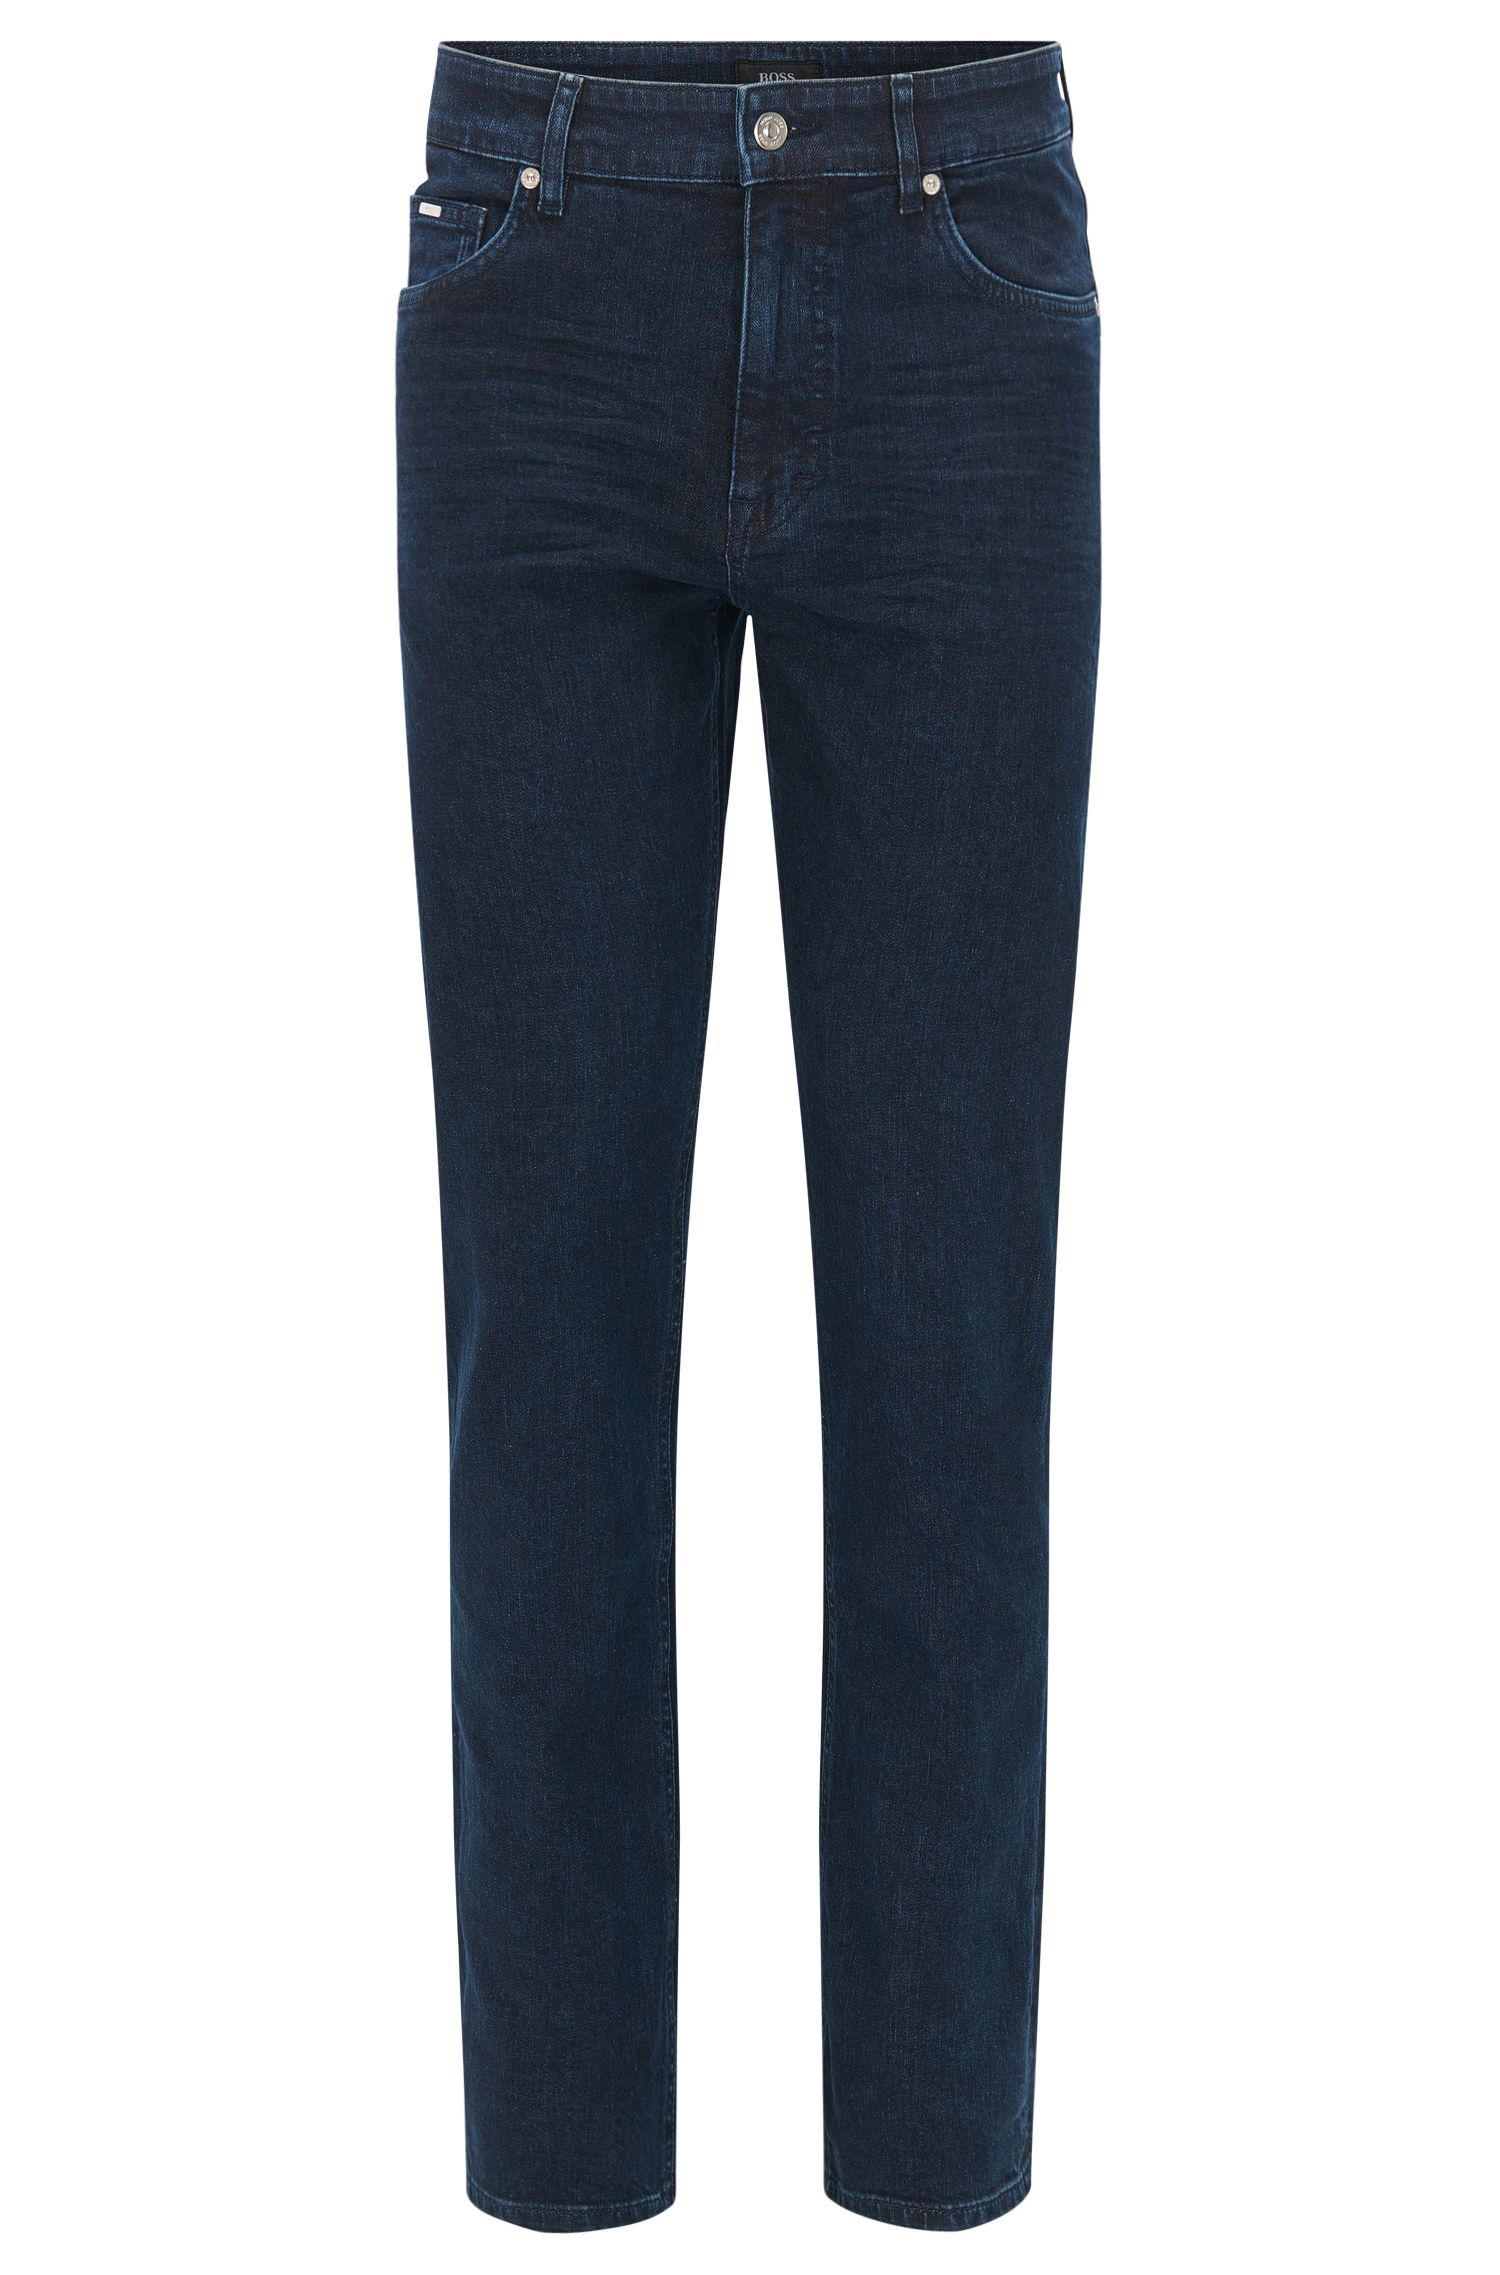 'Albany' | Relaxed Fit, 11 oz Stretch Cotton Jeans